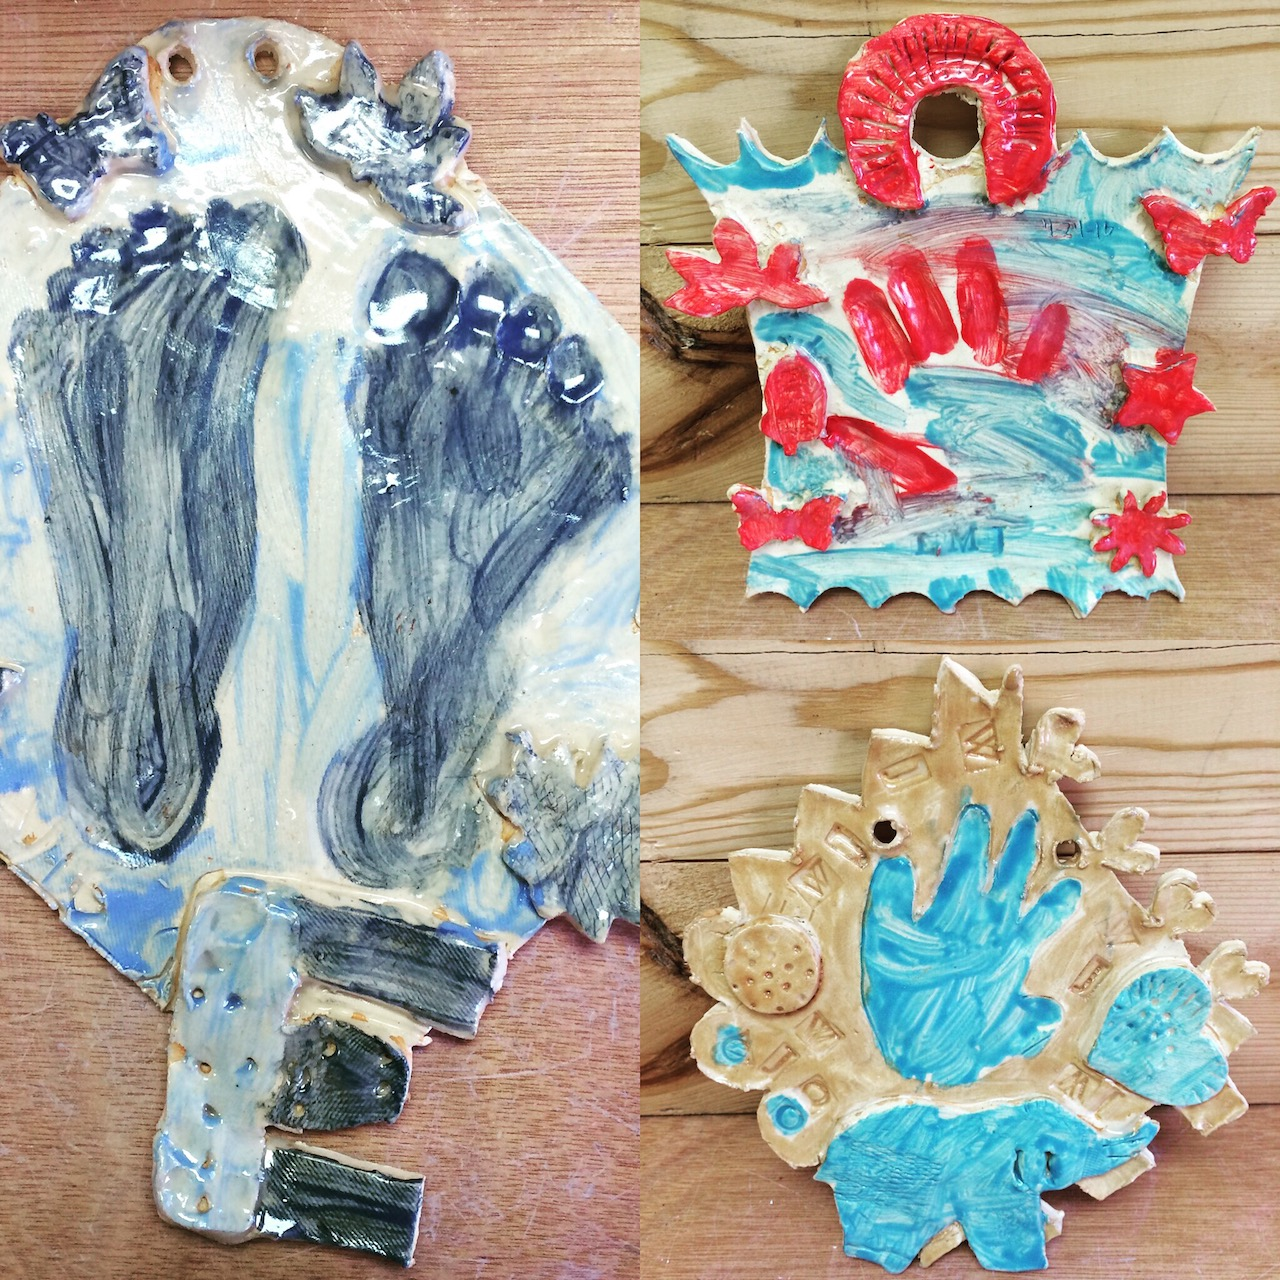 Pottery classes wheel throwing handbuilding ceramics children change and grow quickly capture their footprints and handprints on ceramic tiles that you make yourself from scratch during a private pottery negle Images